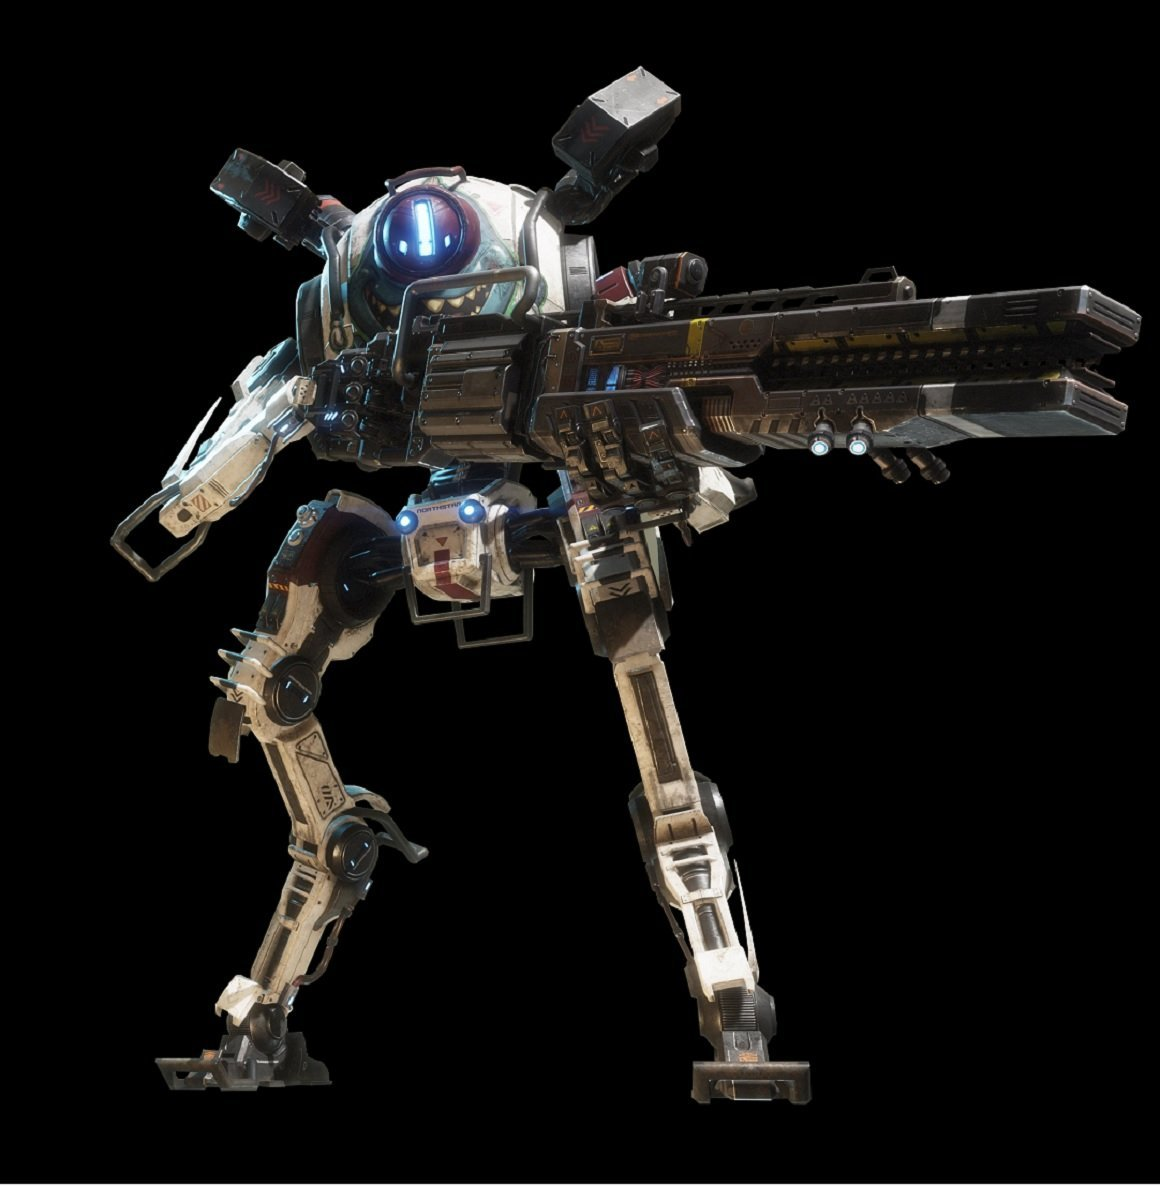 titanfall 2s final three titans have been revealed